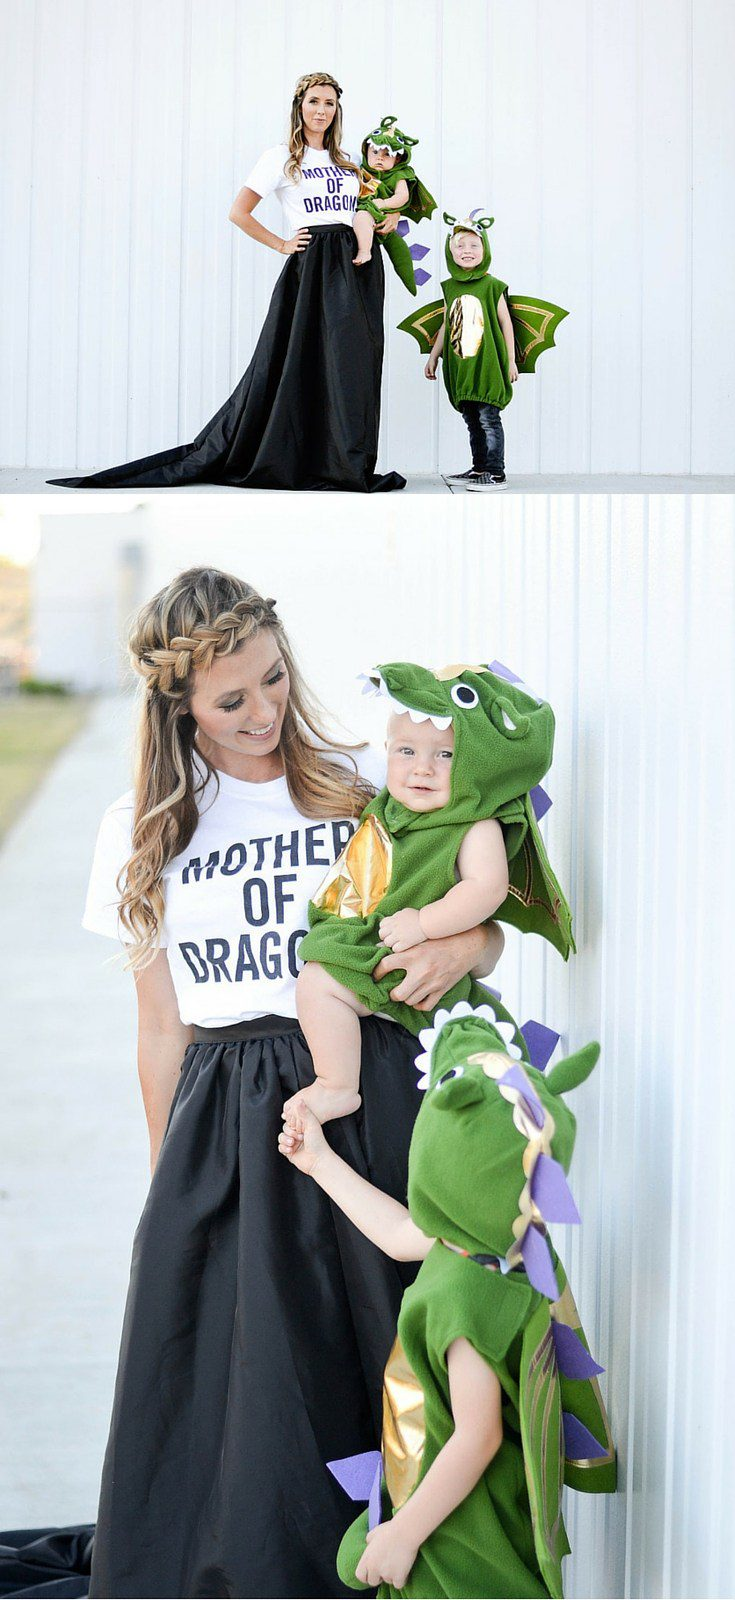 Mother of Dragons Family costume idea from Bel and Beau, plus 10 favorite family costumes (with ideas for baby too!) from popular Florida lifestyle blogger Tabitha Blue of Fresh Mommy Blog! | Cute Halloween Family Costume Ideas featured by top Florida lifestyle blogger, Fresh Mommy Blog: Mother of Dragons